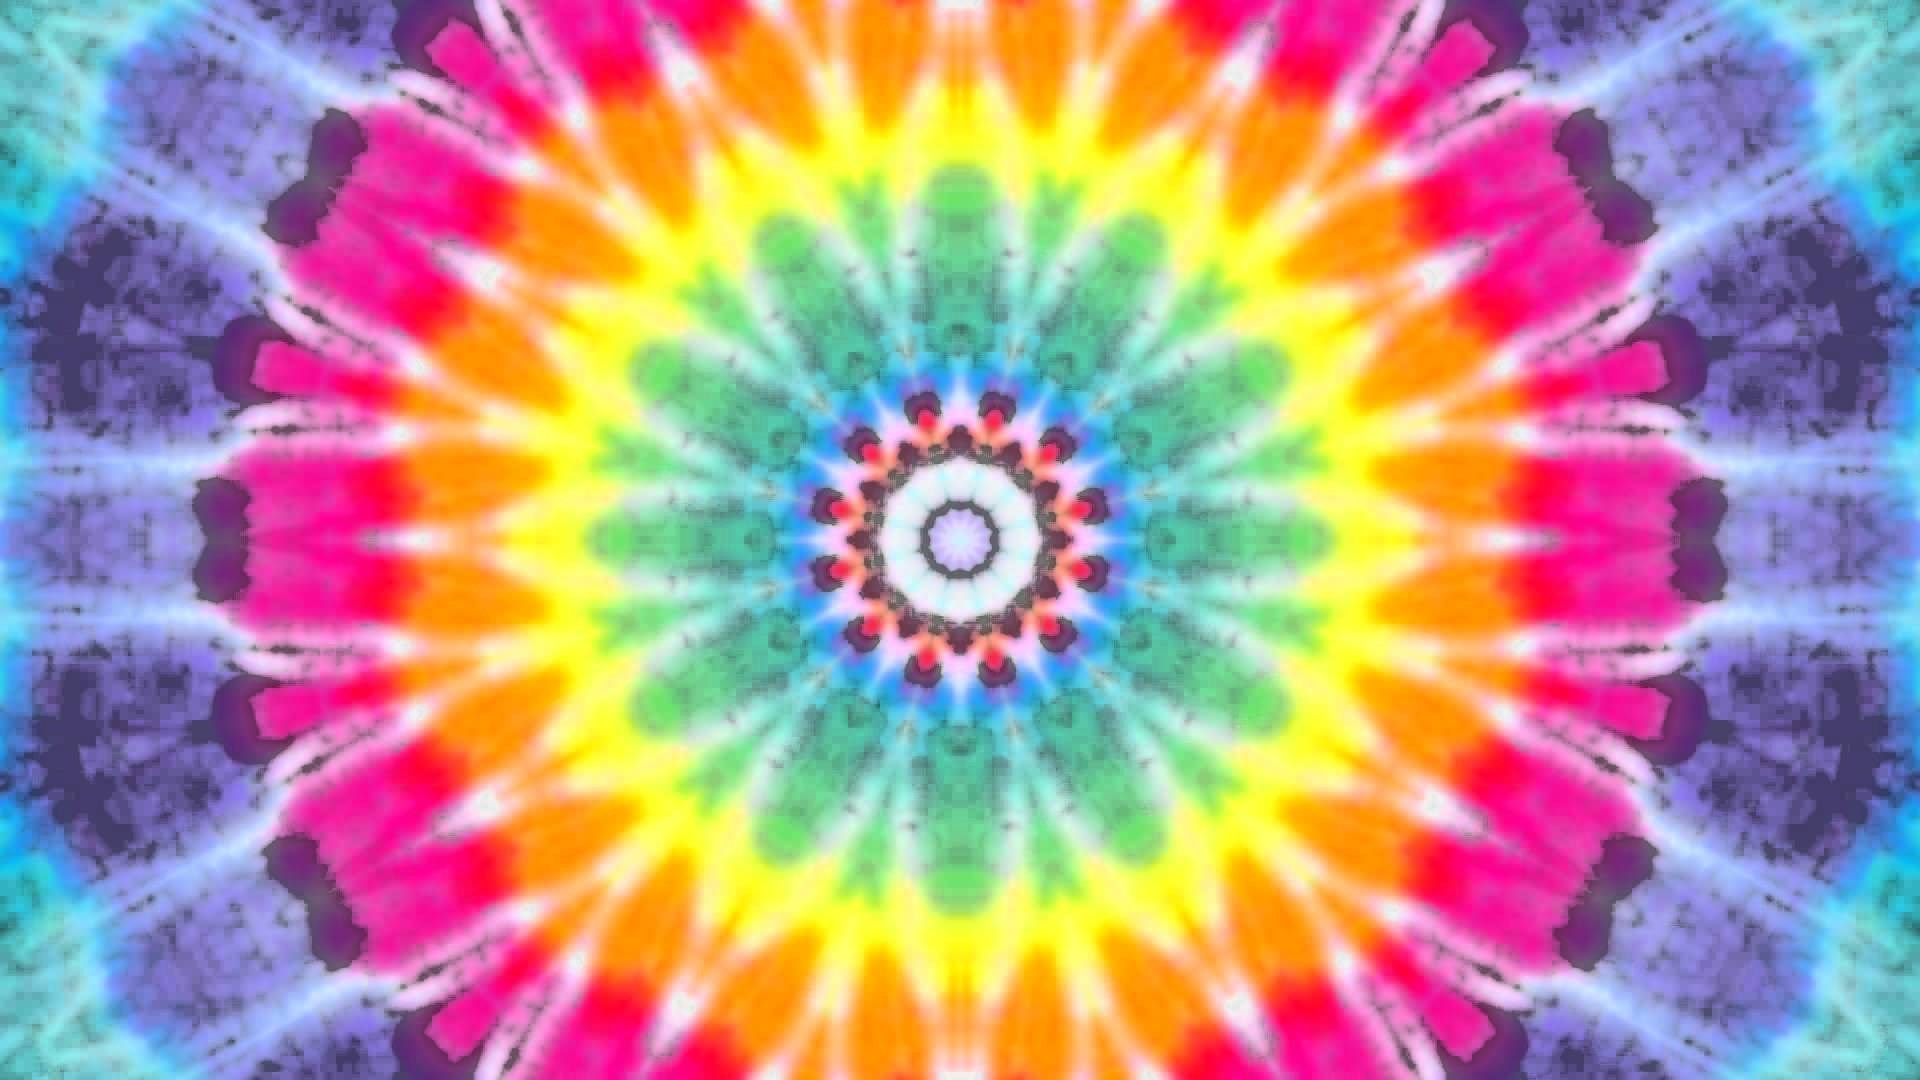 free tie dye wallpaper high resolution hd Tie dye